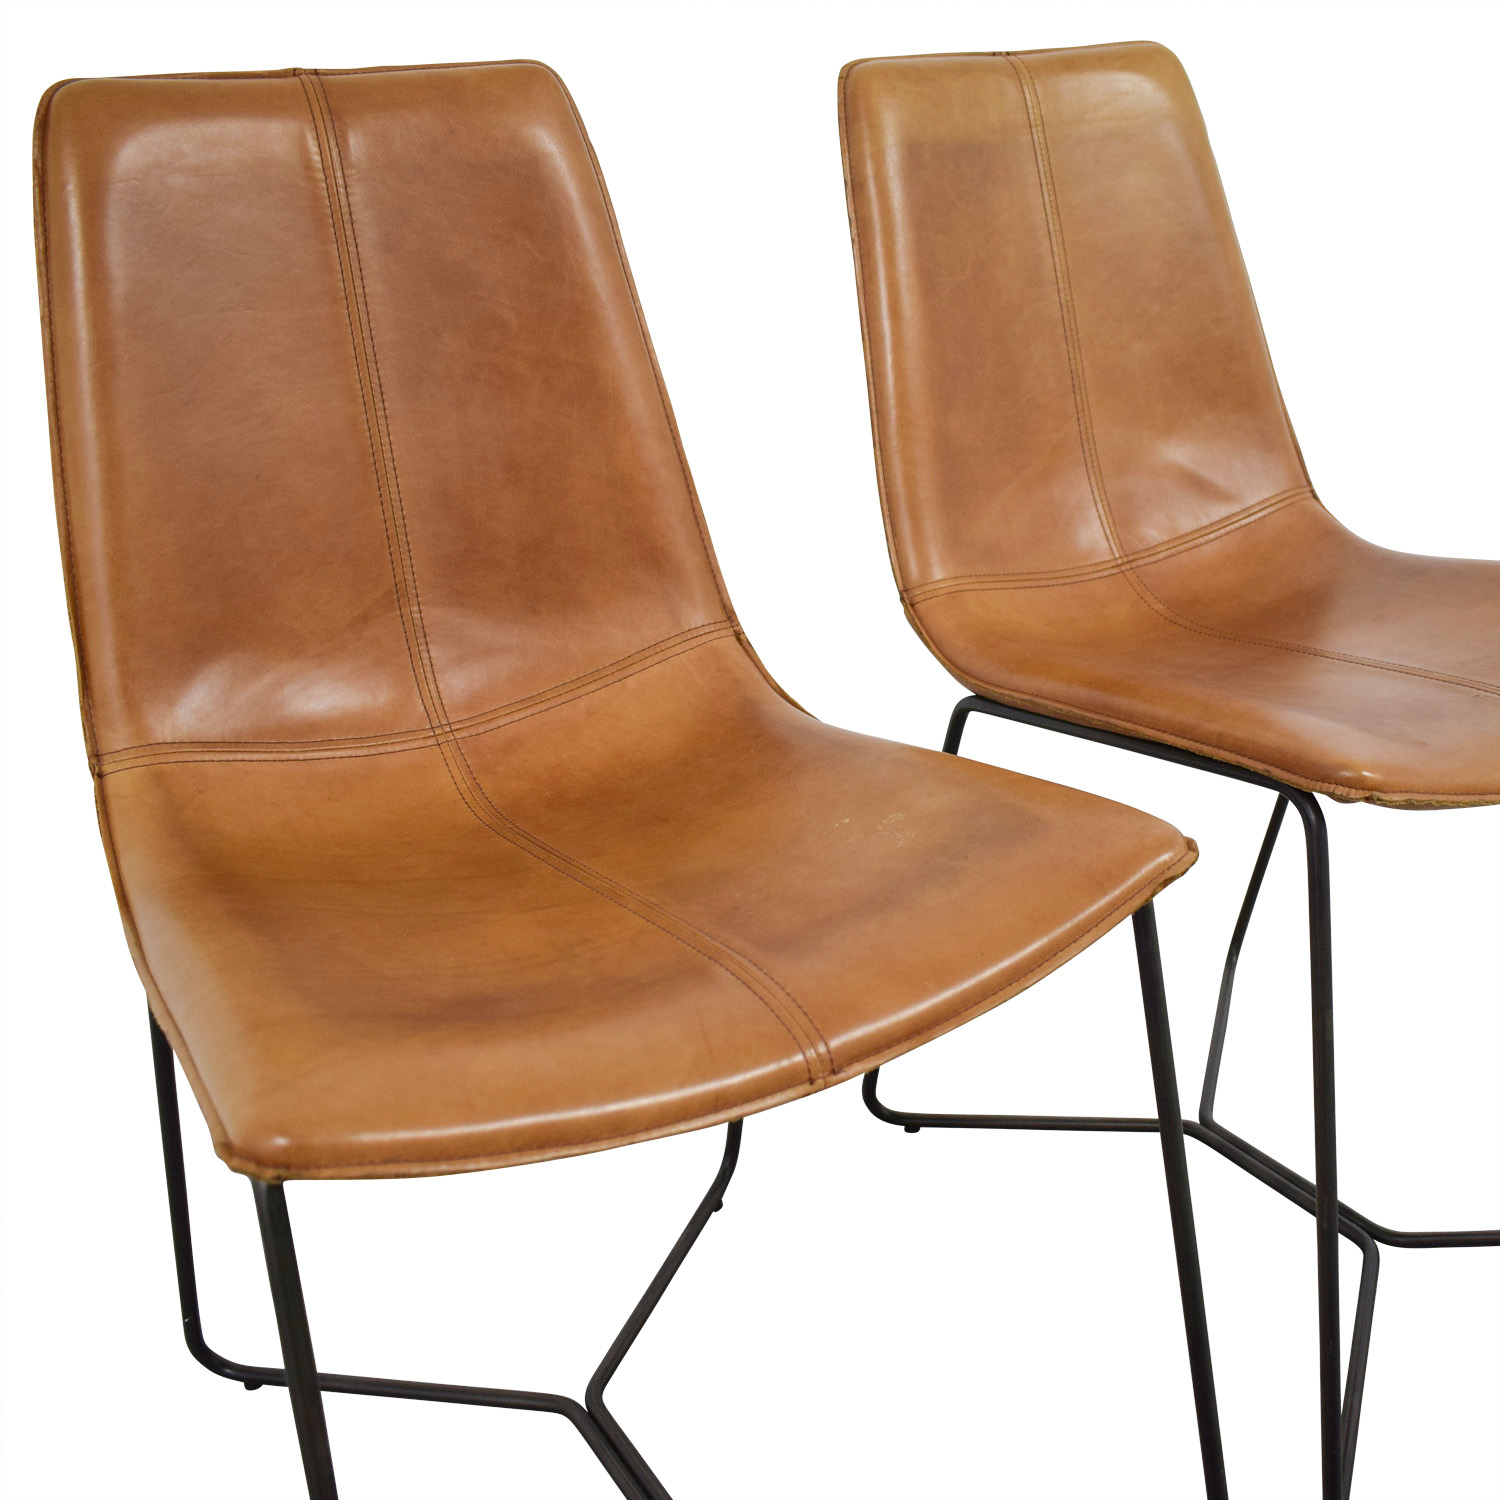 shop West Elm Leather Slope Dining Chairs West Elm Dining Chairs